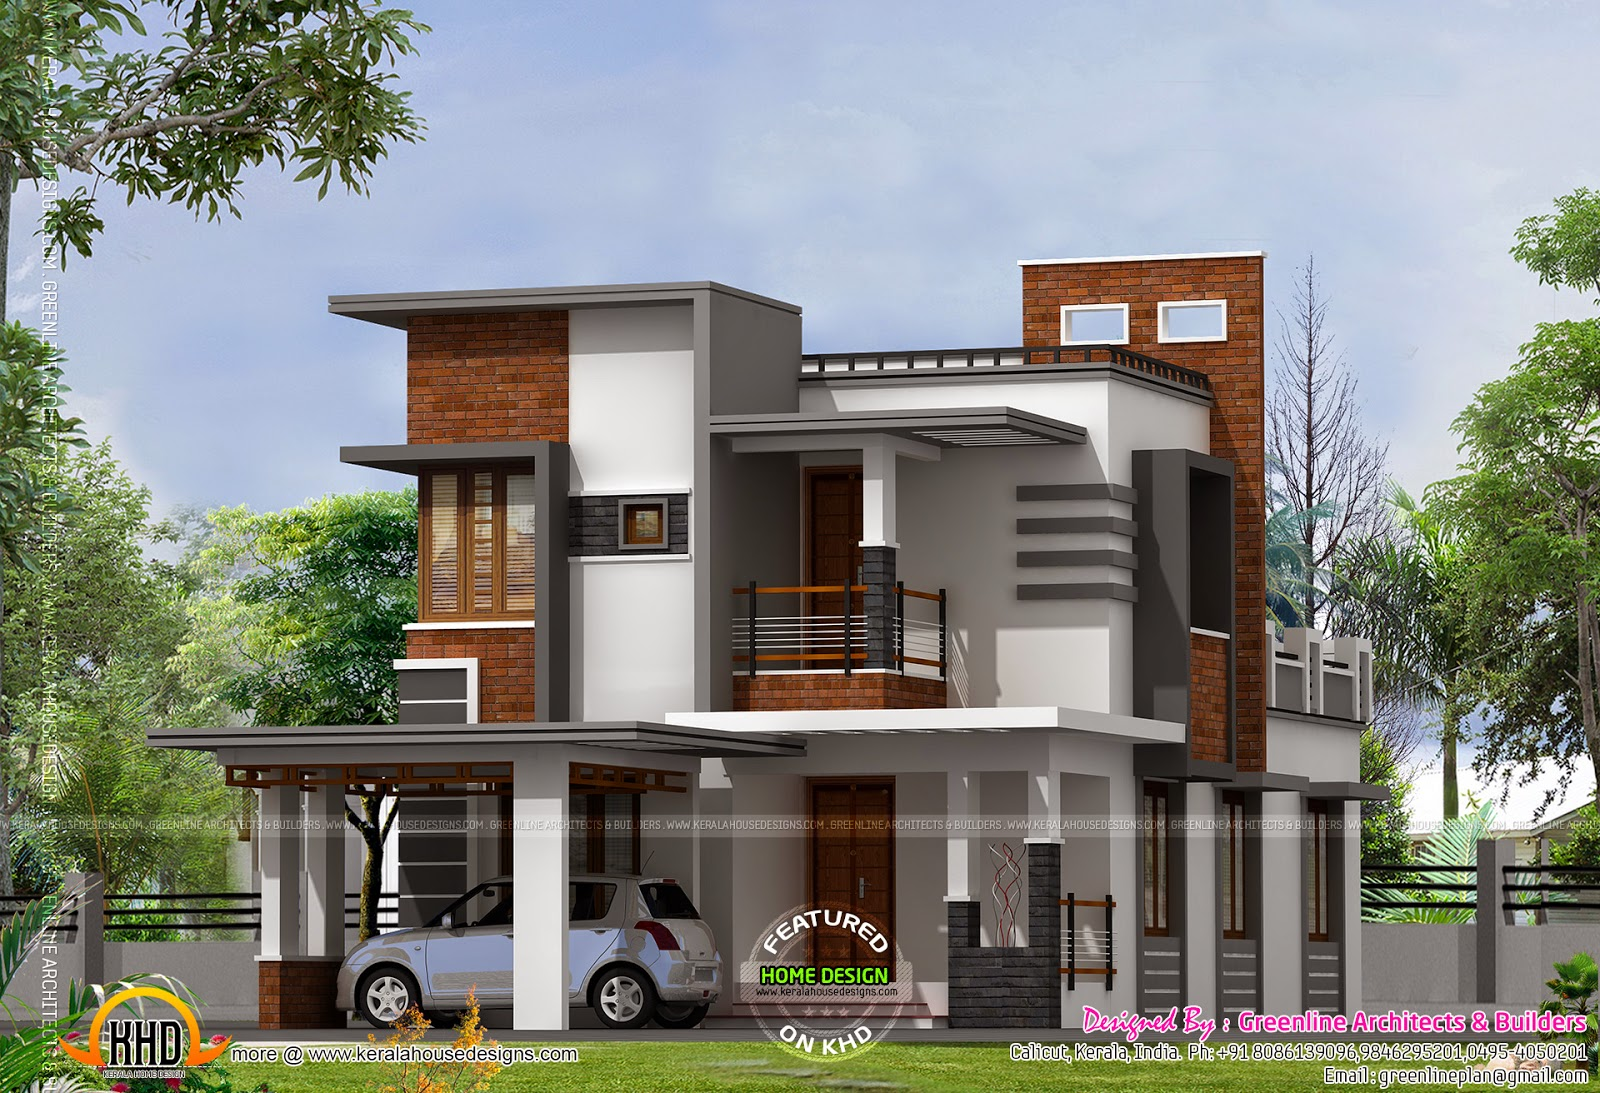 Low cost contemporary house - Kerala home design and floor ...